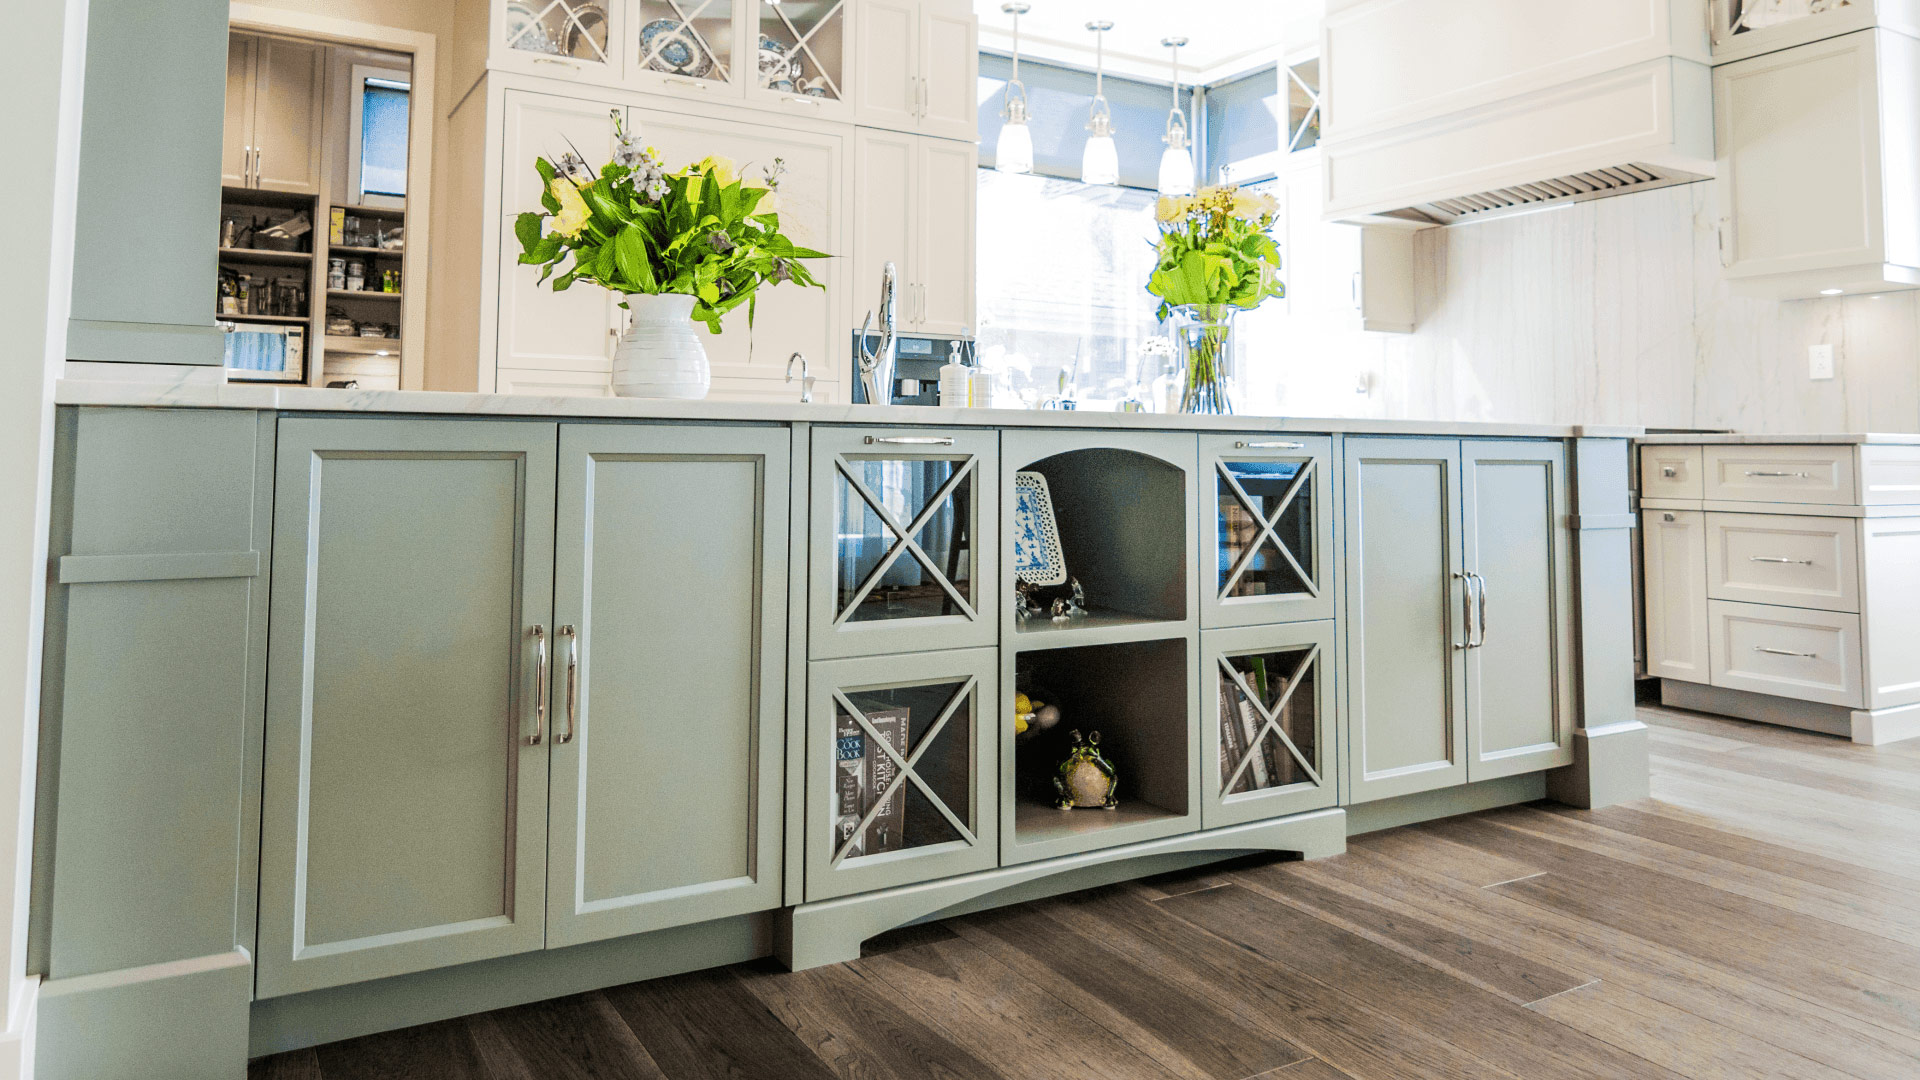 Kitchen cabinets of the central island of a kitchen in soft green color. Some of the wardrobes feature glass doors.